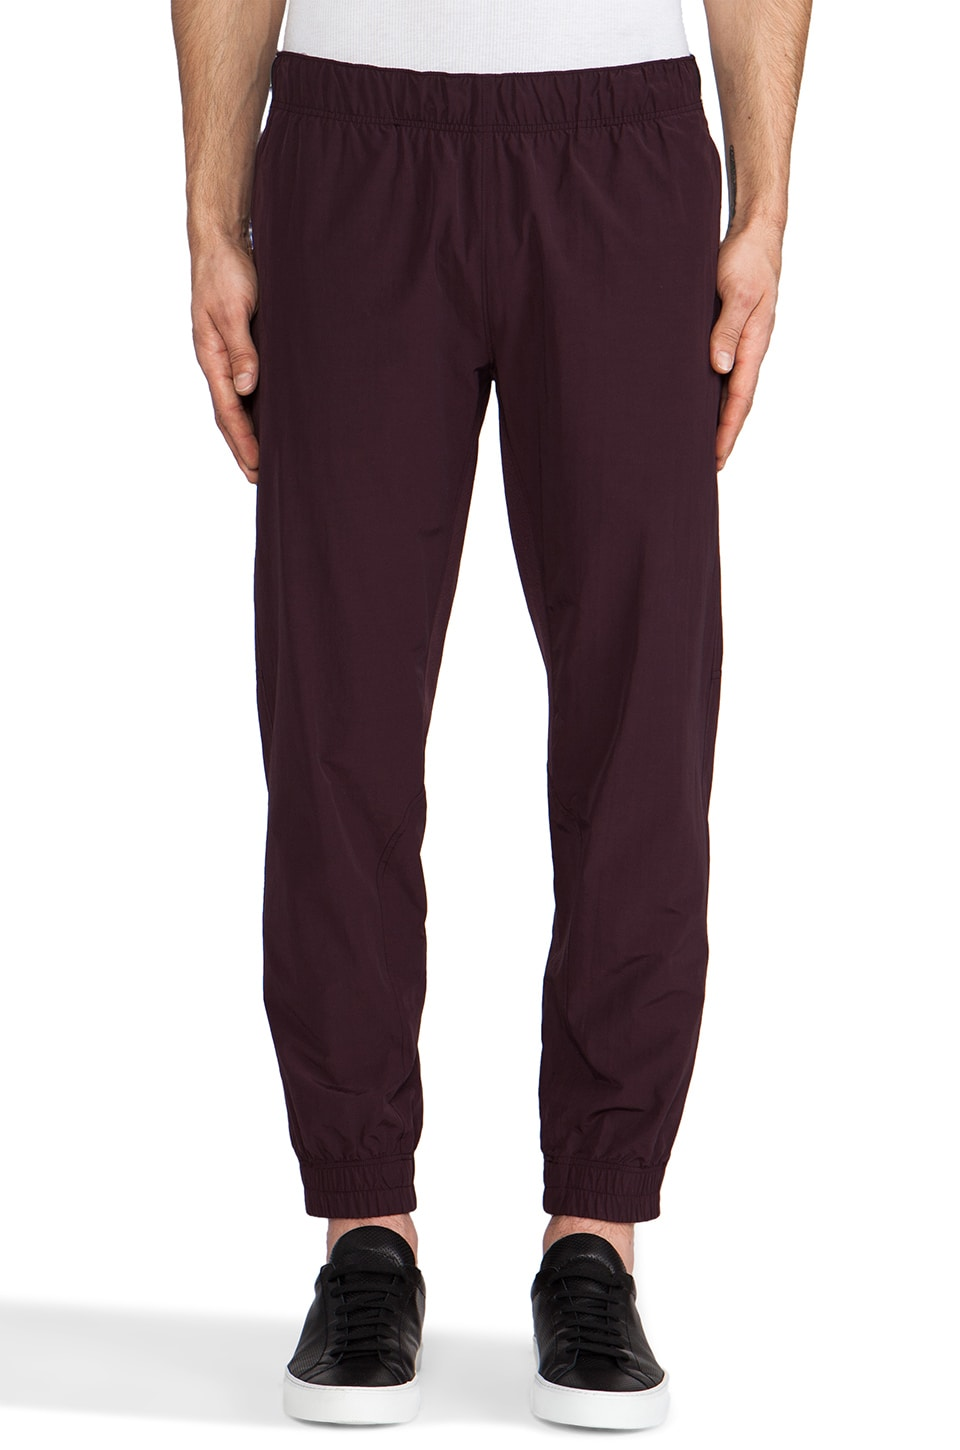 Theory 38 Slikt Track Pant in Viper